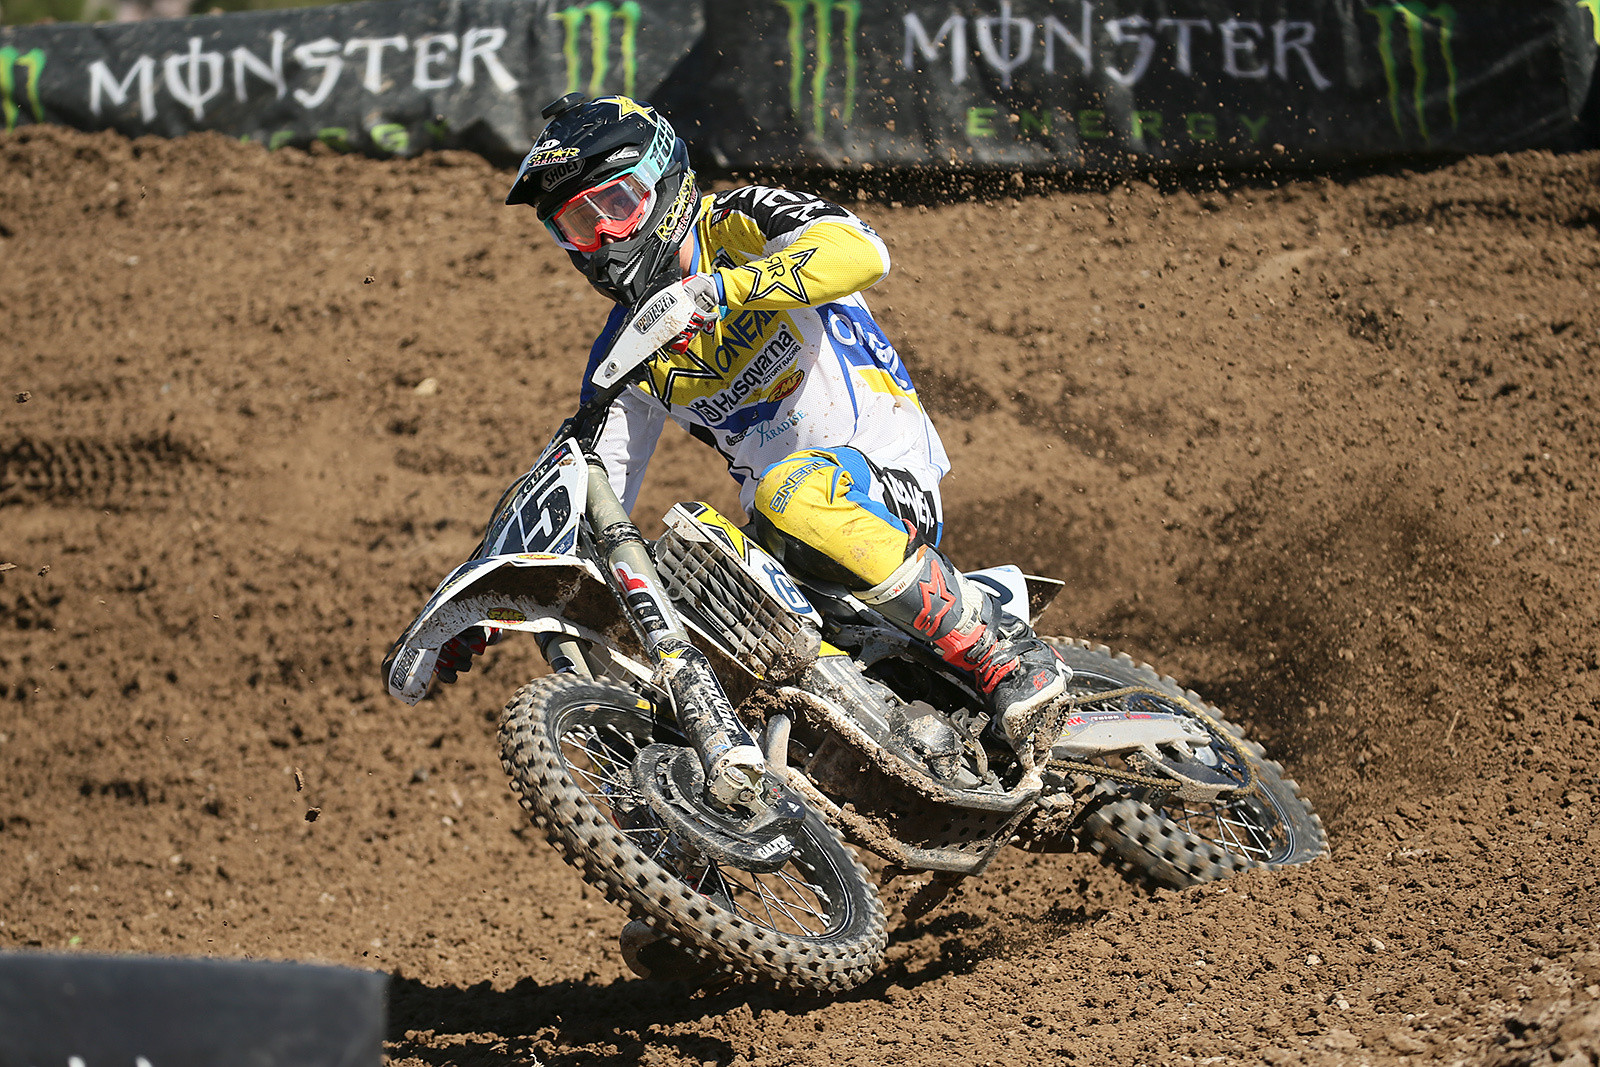 Fastest qualifier in the Cup class here at the Monster Energy Cup? How about Dean Wilson?